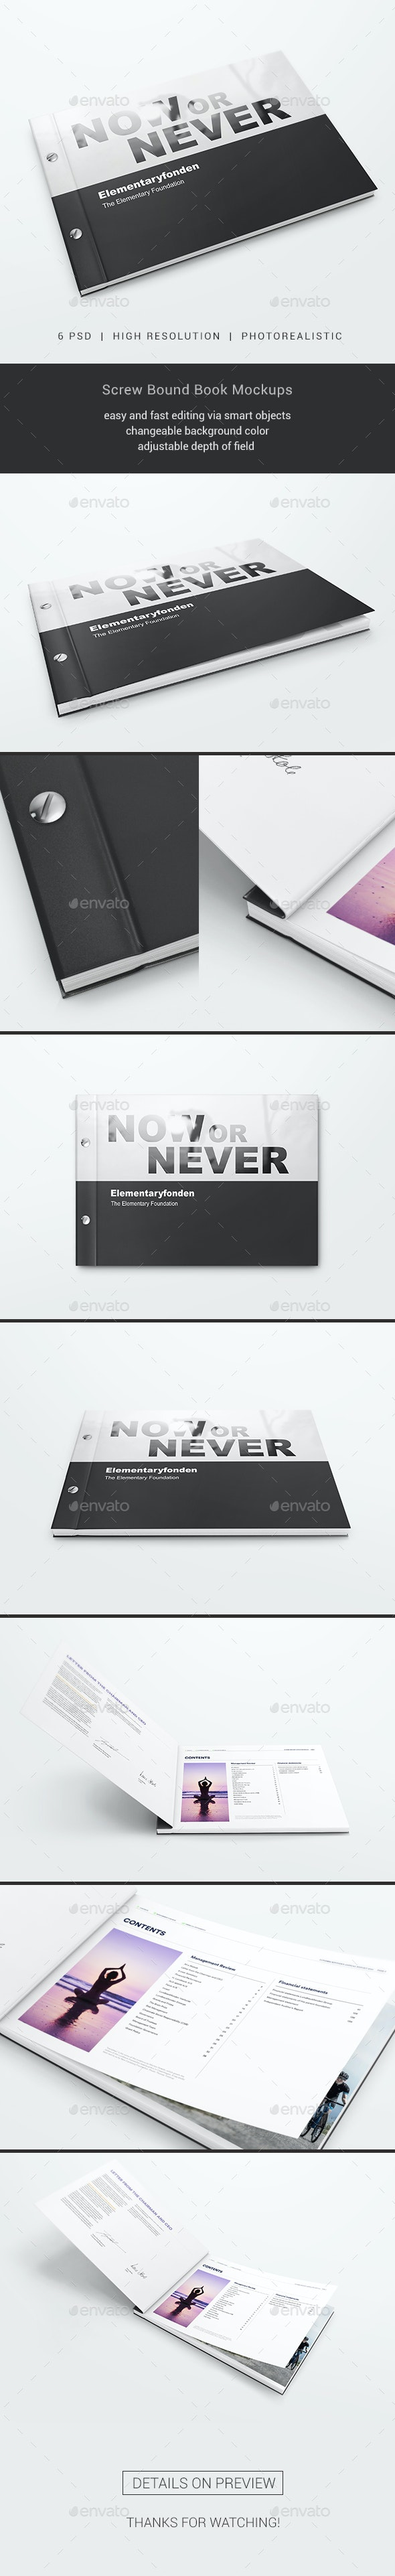 Screw Bound Book Mockups - Books Print